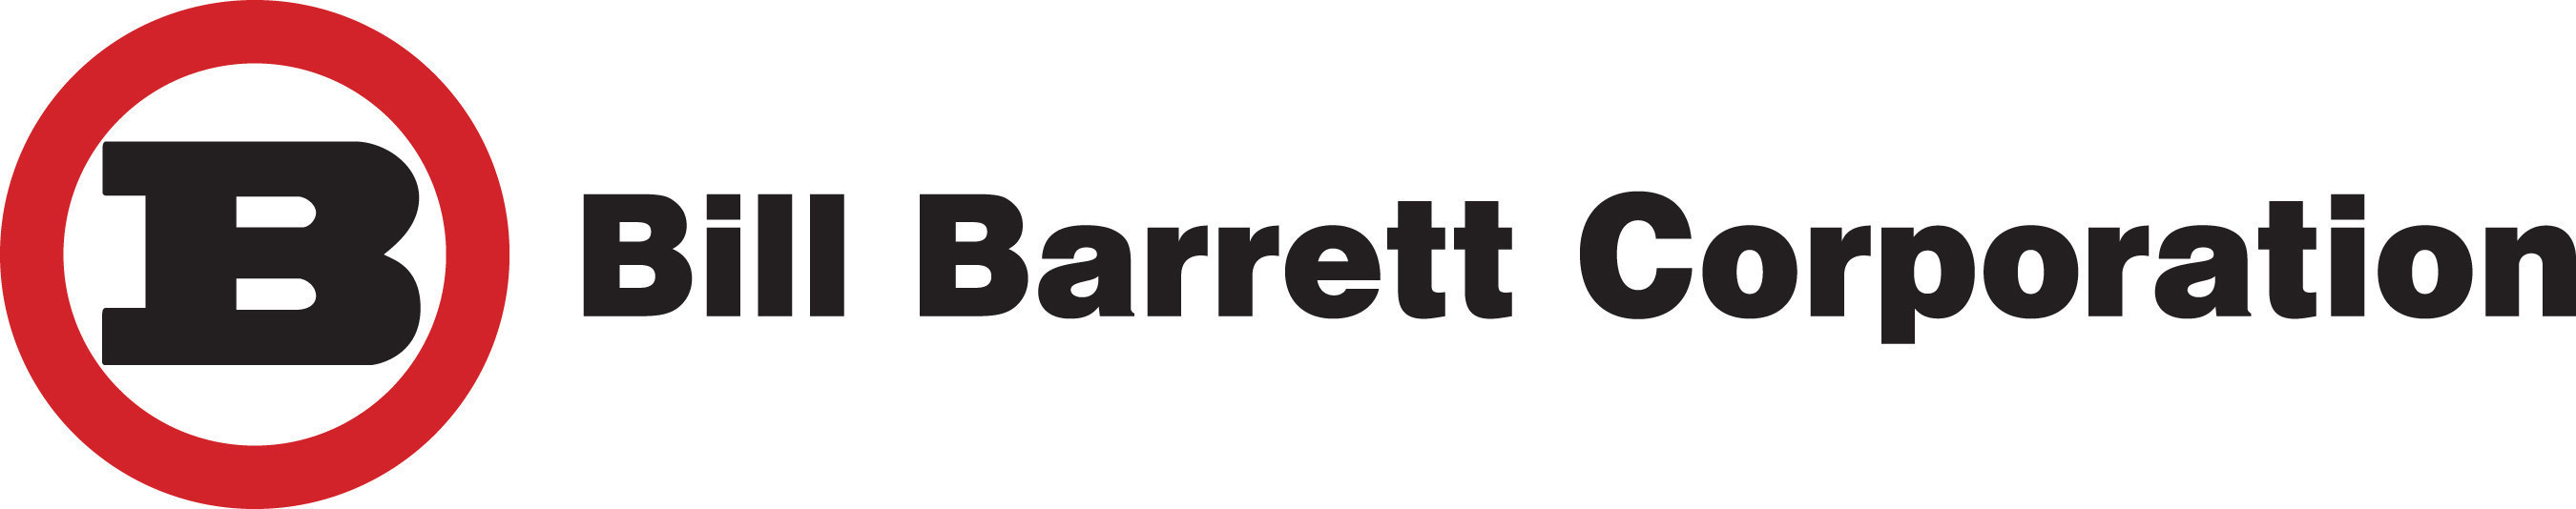 Bill Barrett Corporation Logo